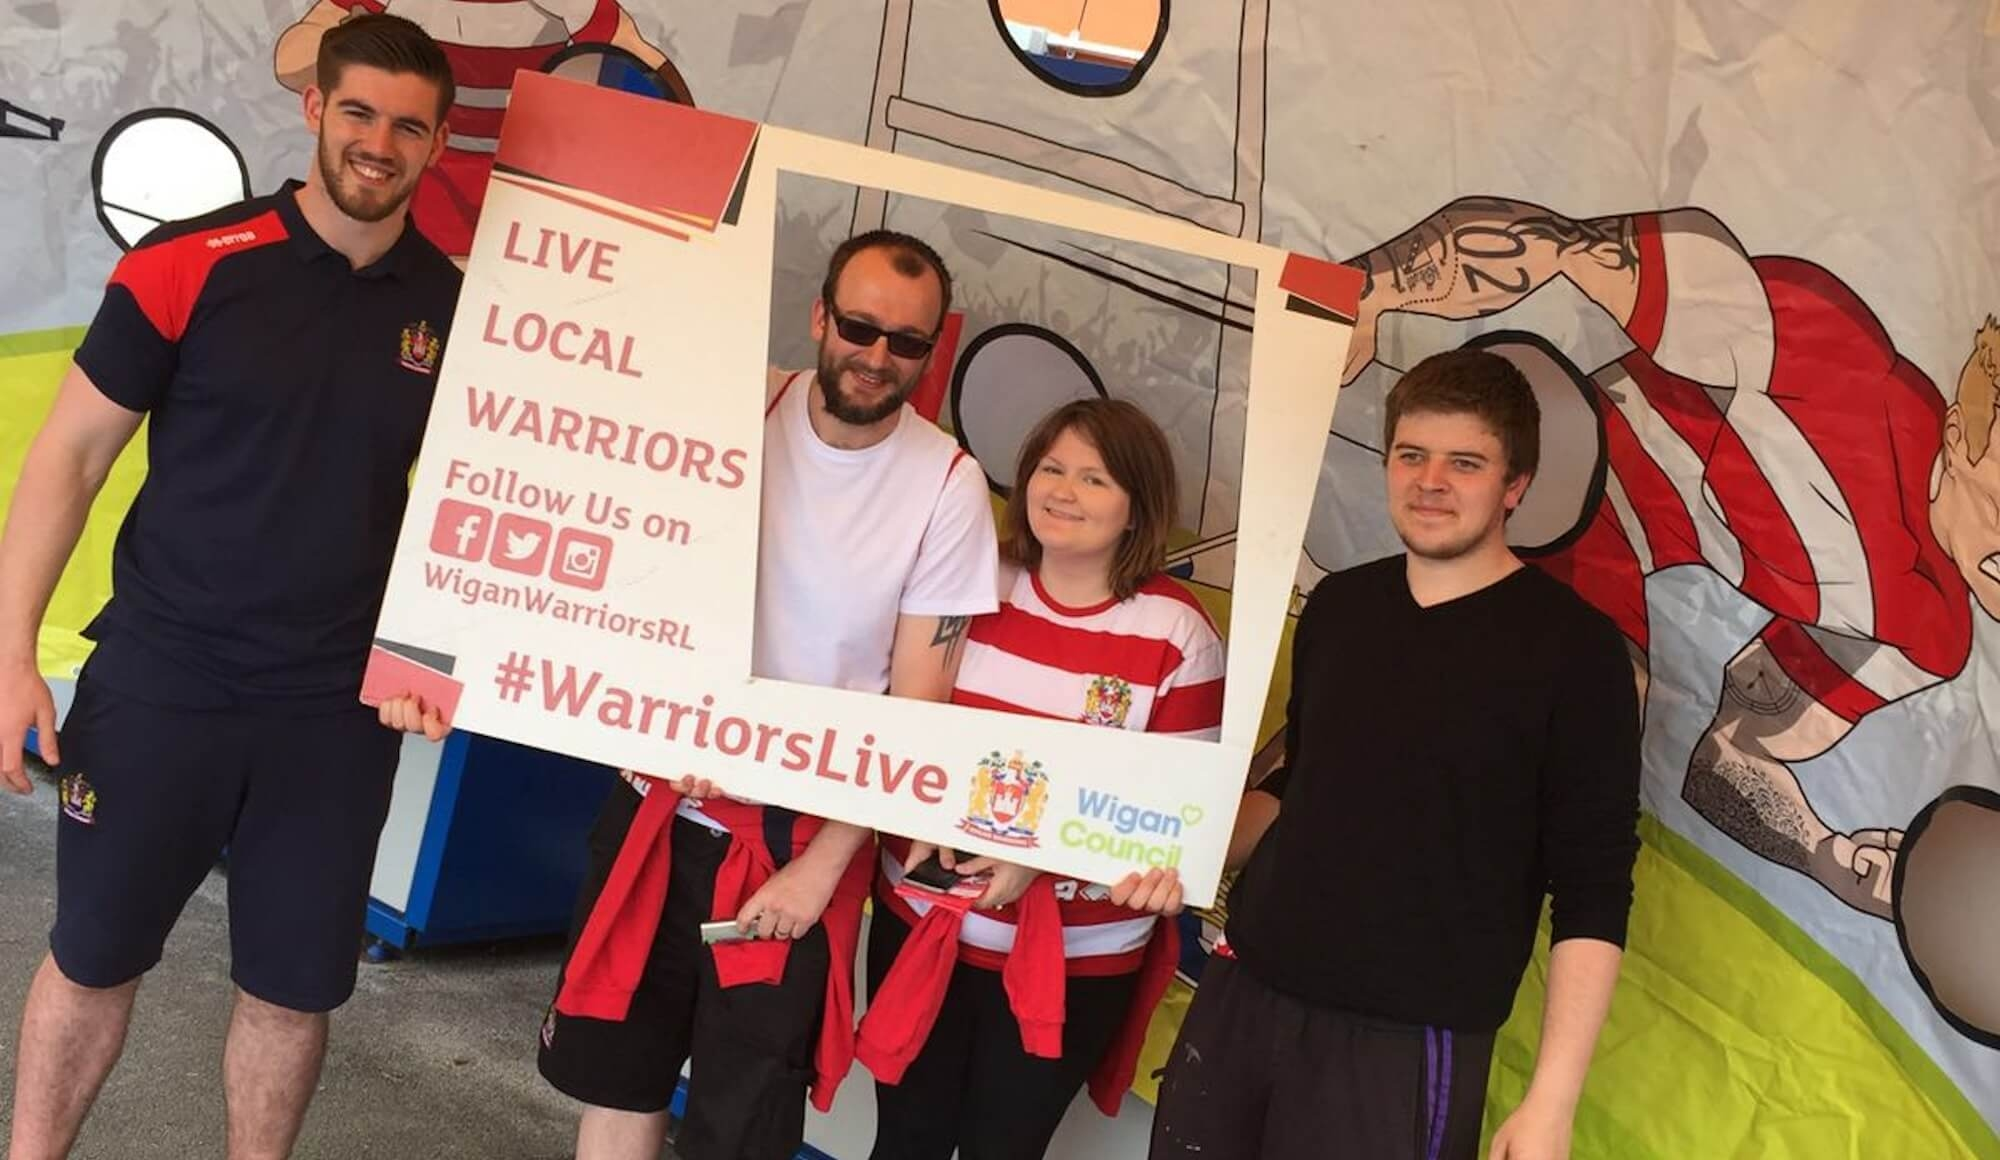 BIG ONE Warriors Live Roadshow